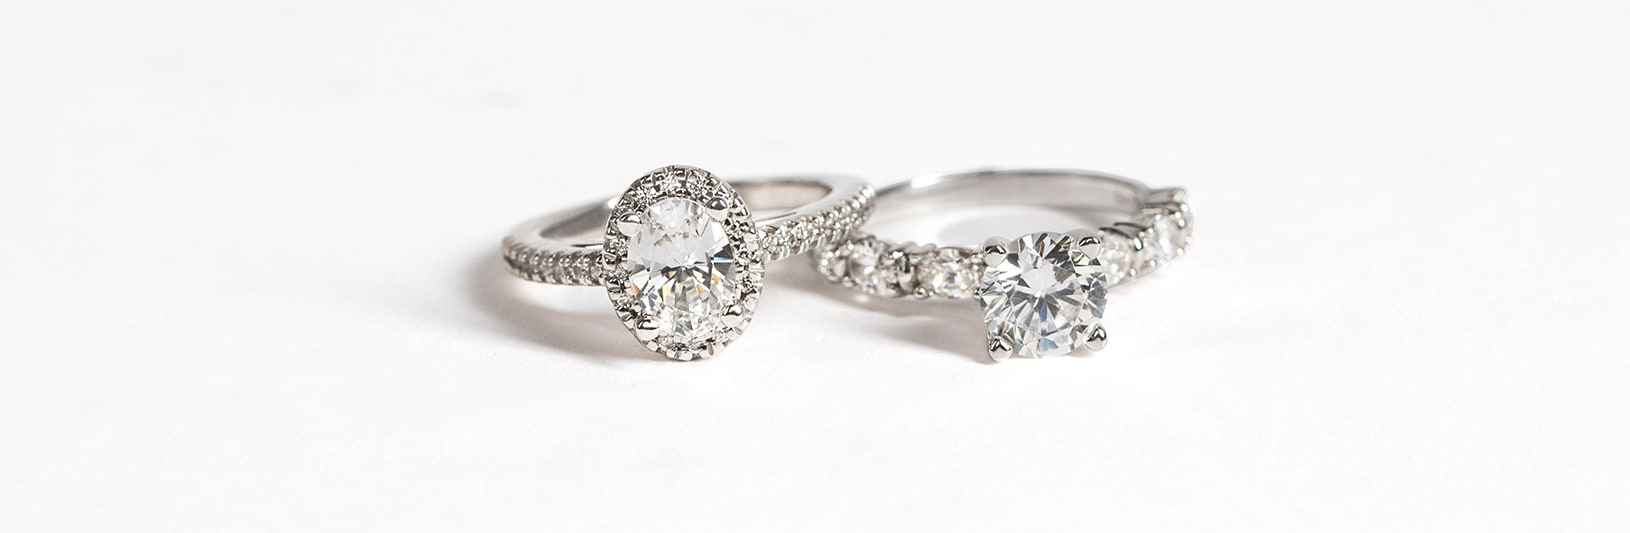 Two engagement rings compared side by side